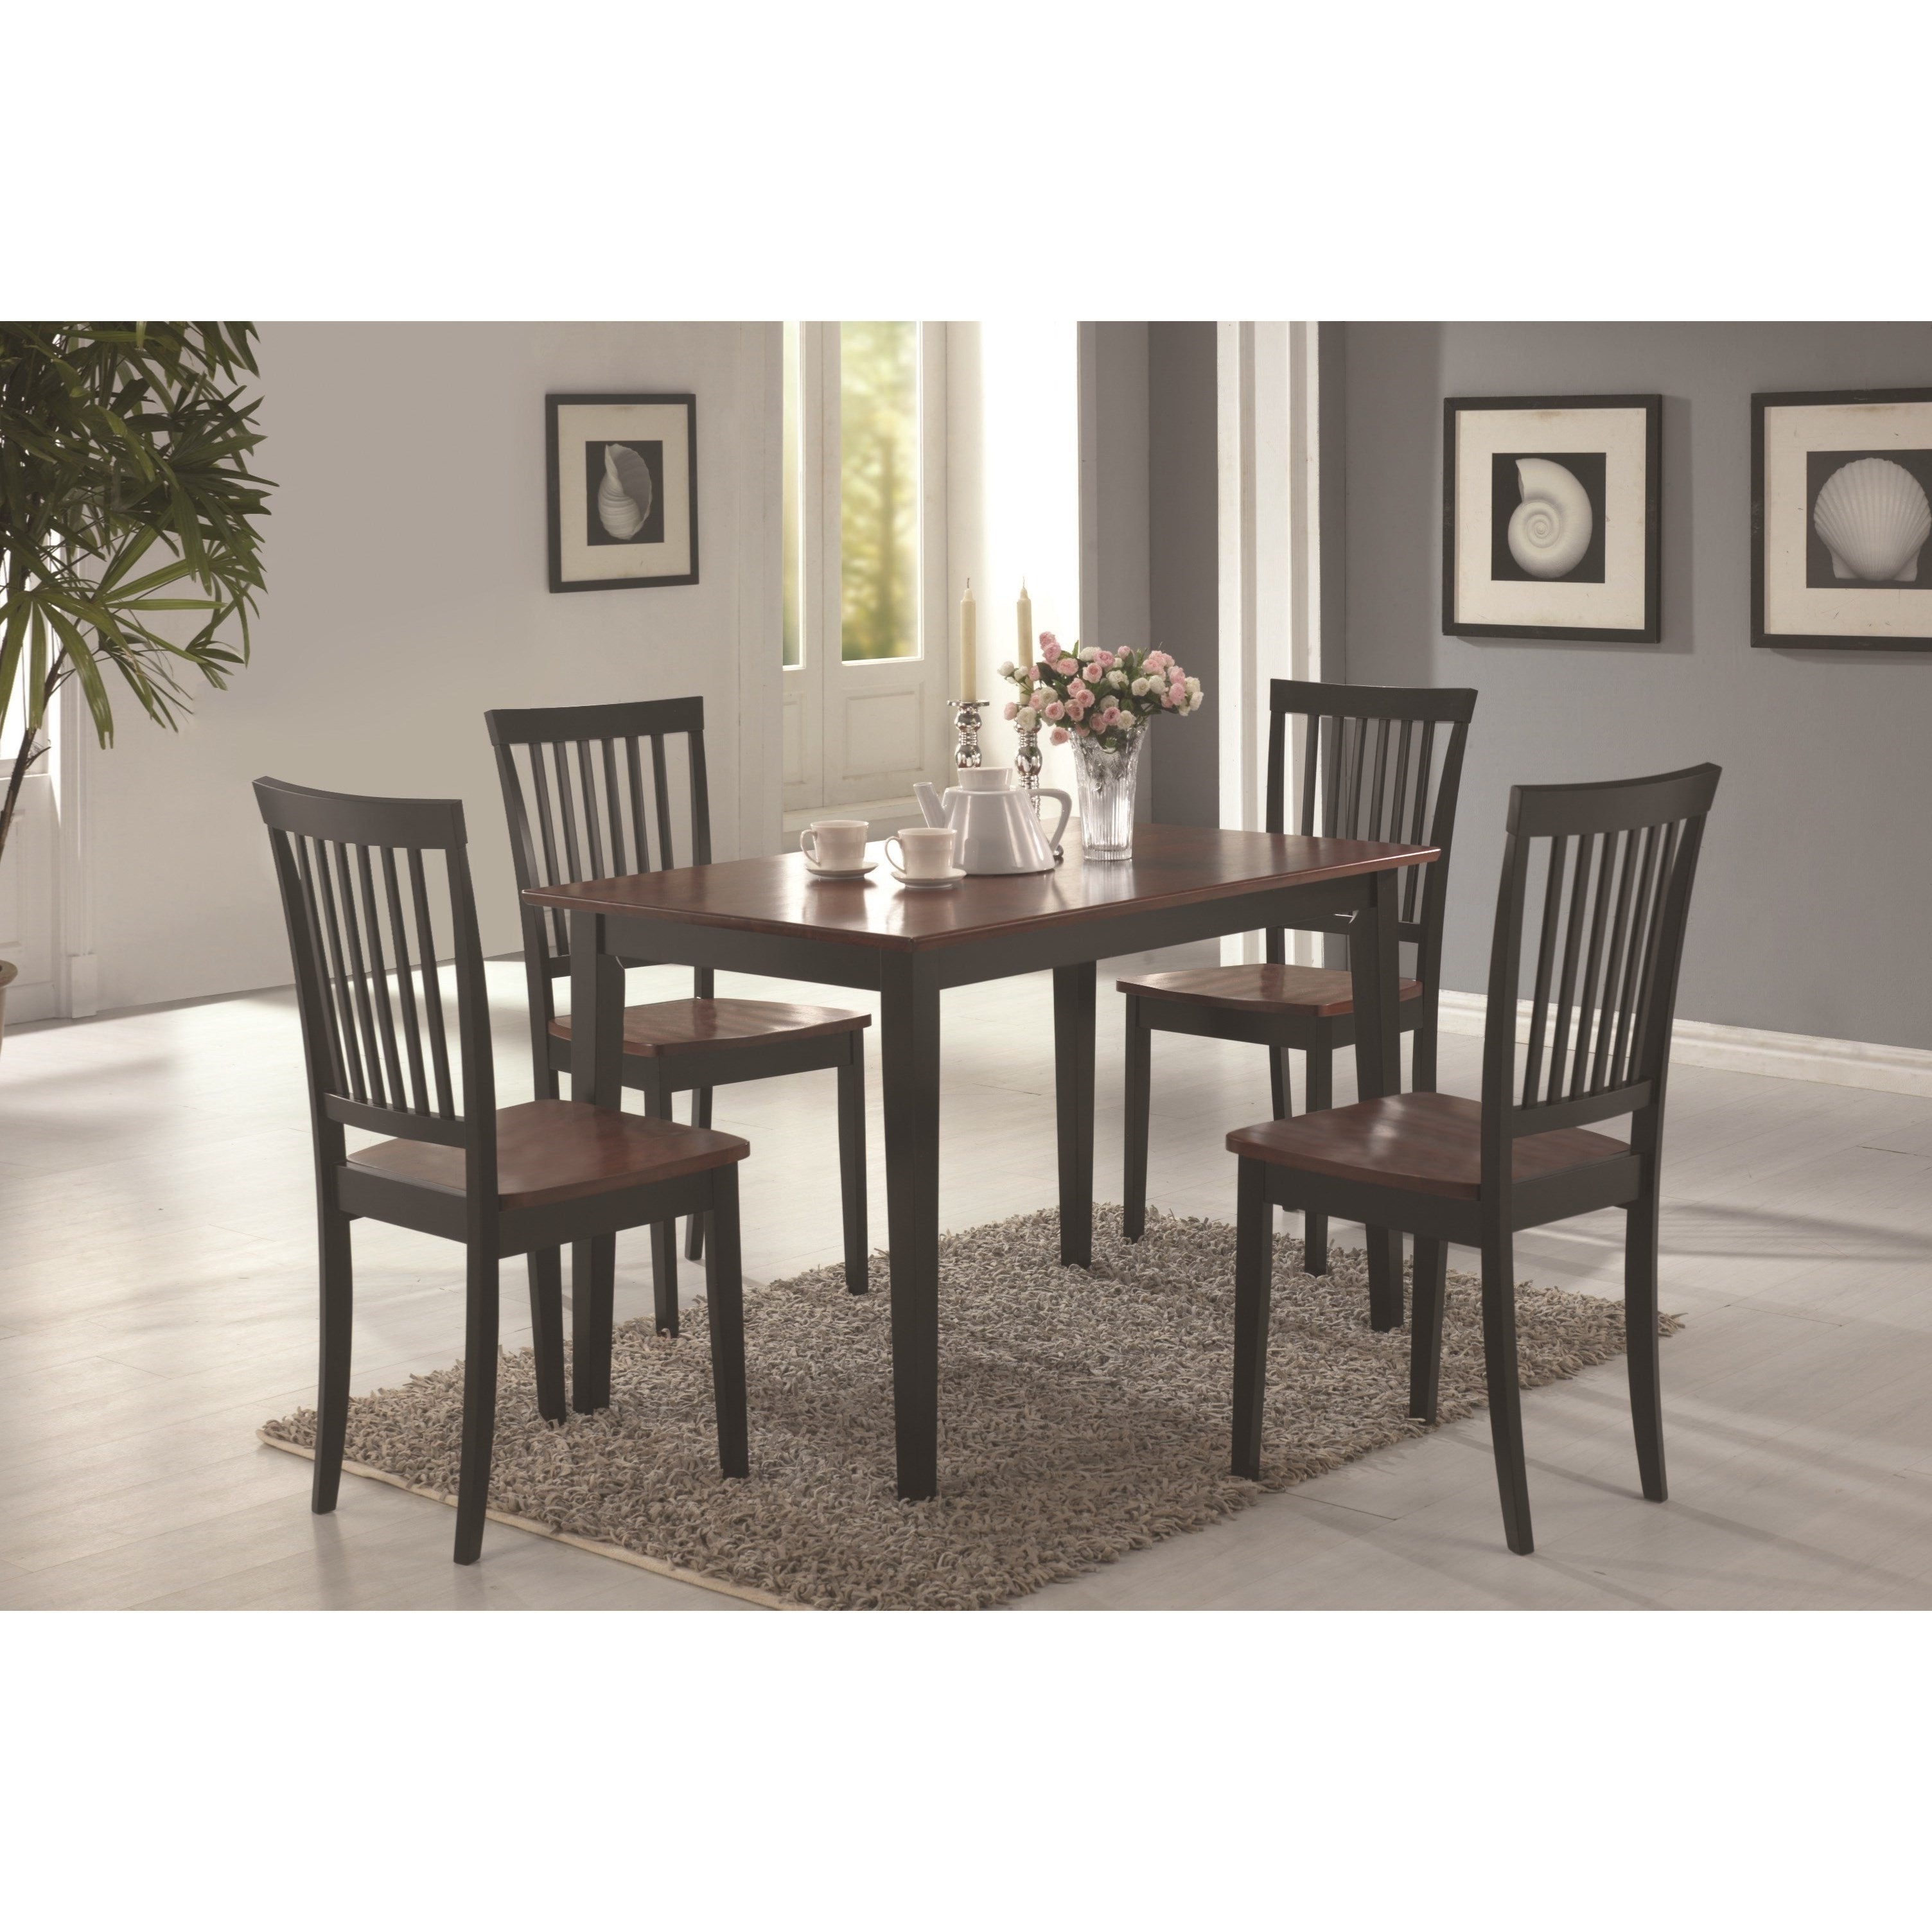 Wayfair With Regard To Most Popular Candice Ii 7 Piece Extension Rectangular Dining Sets With Slat Back Side Chairs (View 24 of 25)